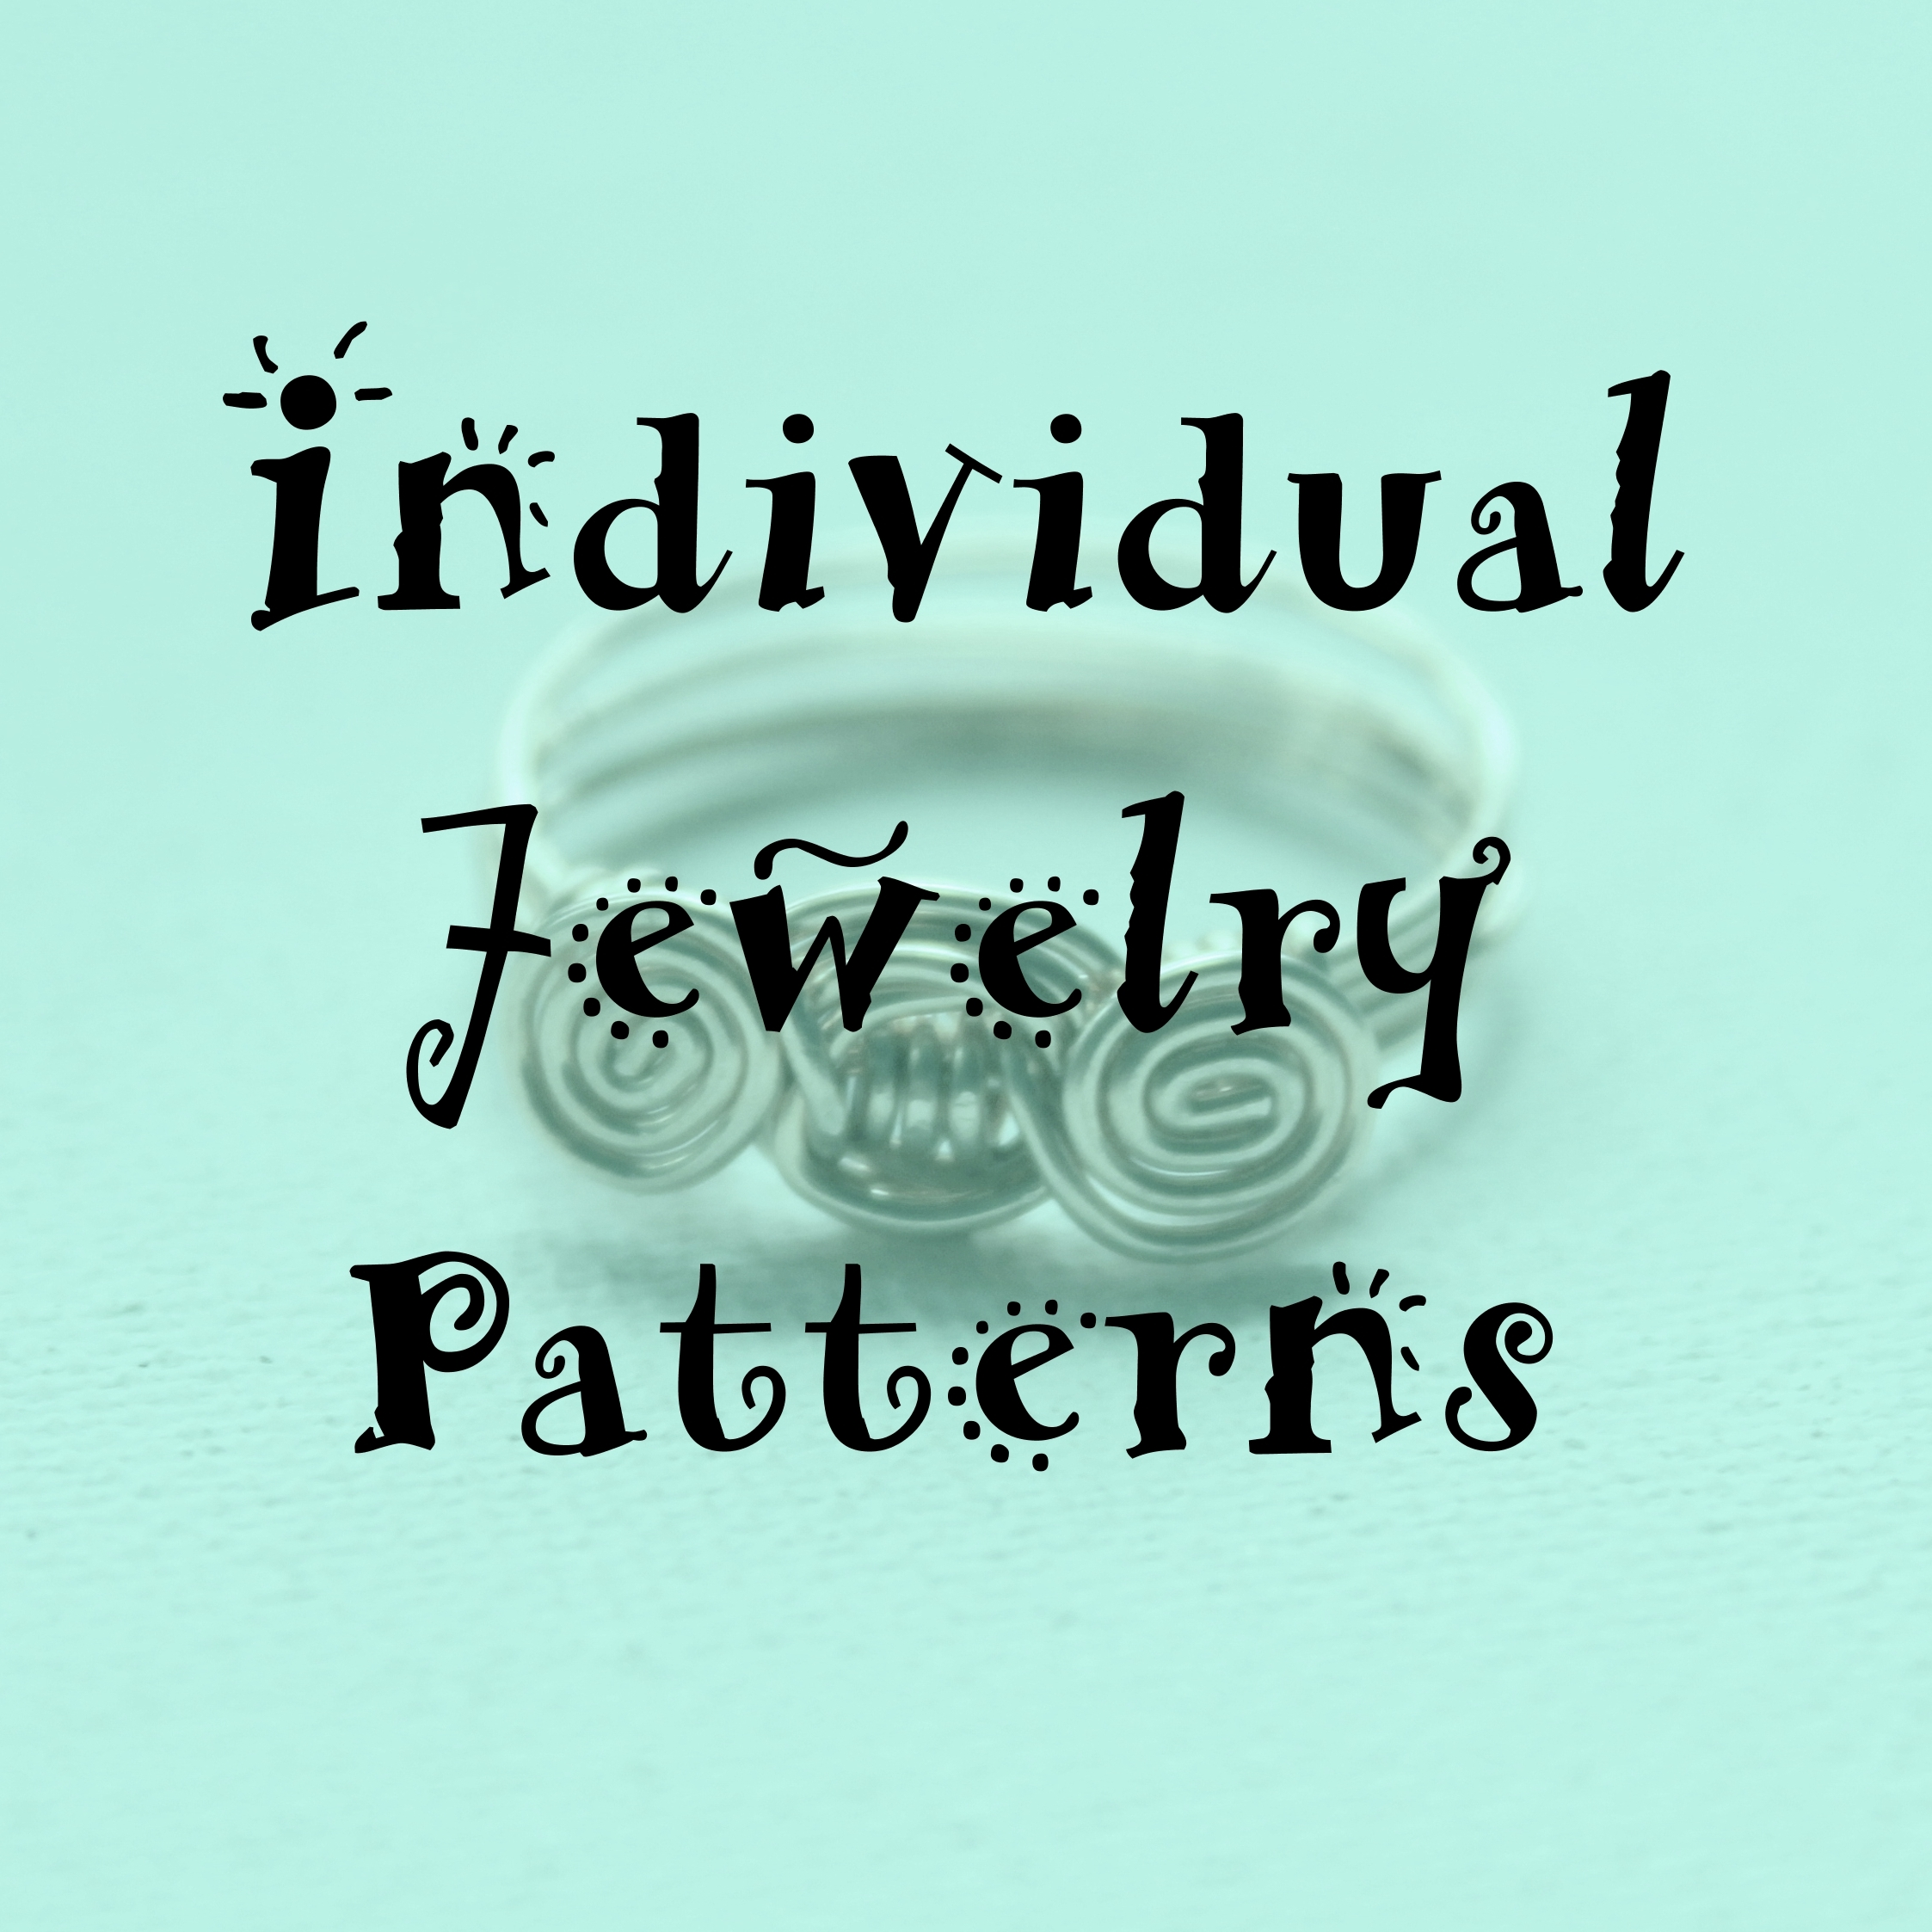 Individual Jewelry Patterns